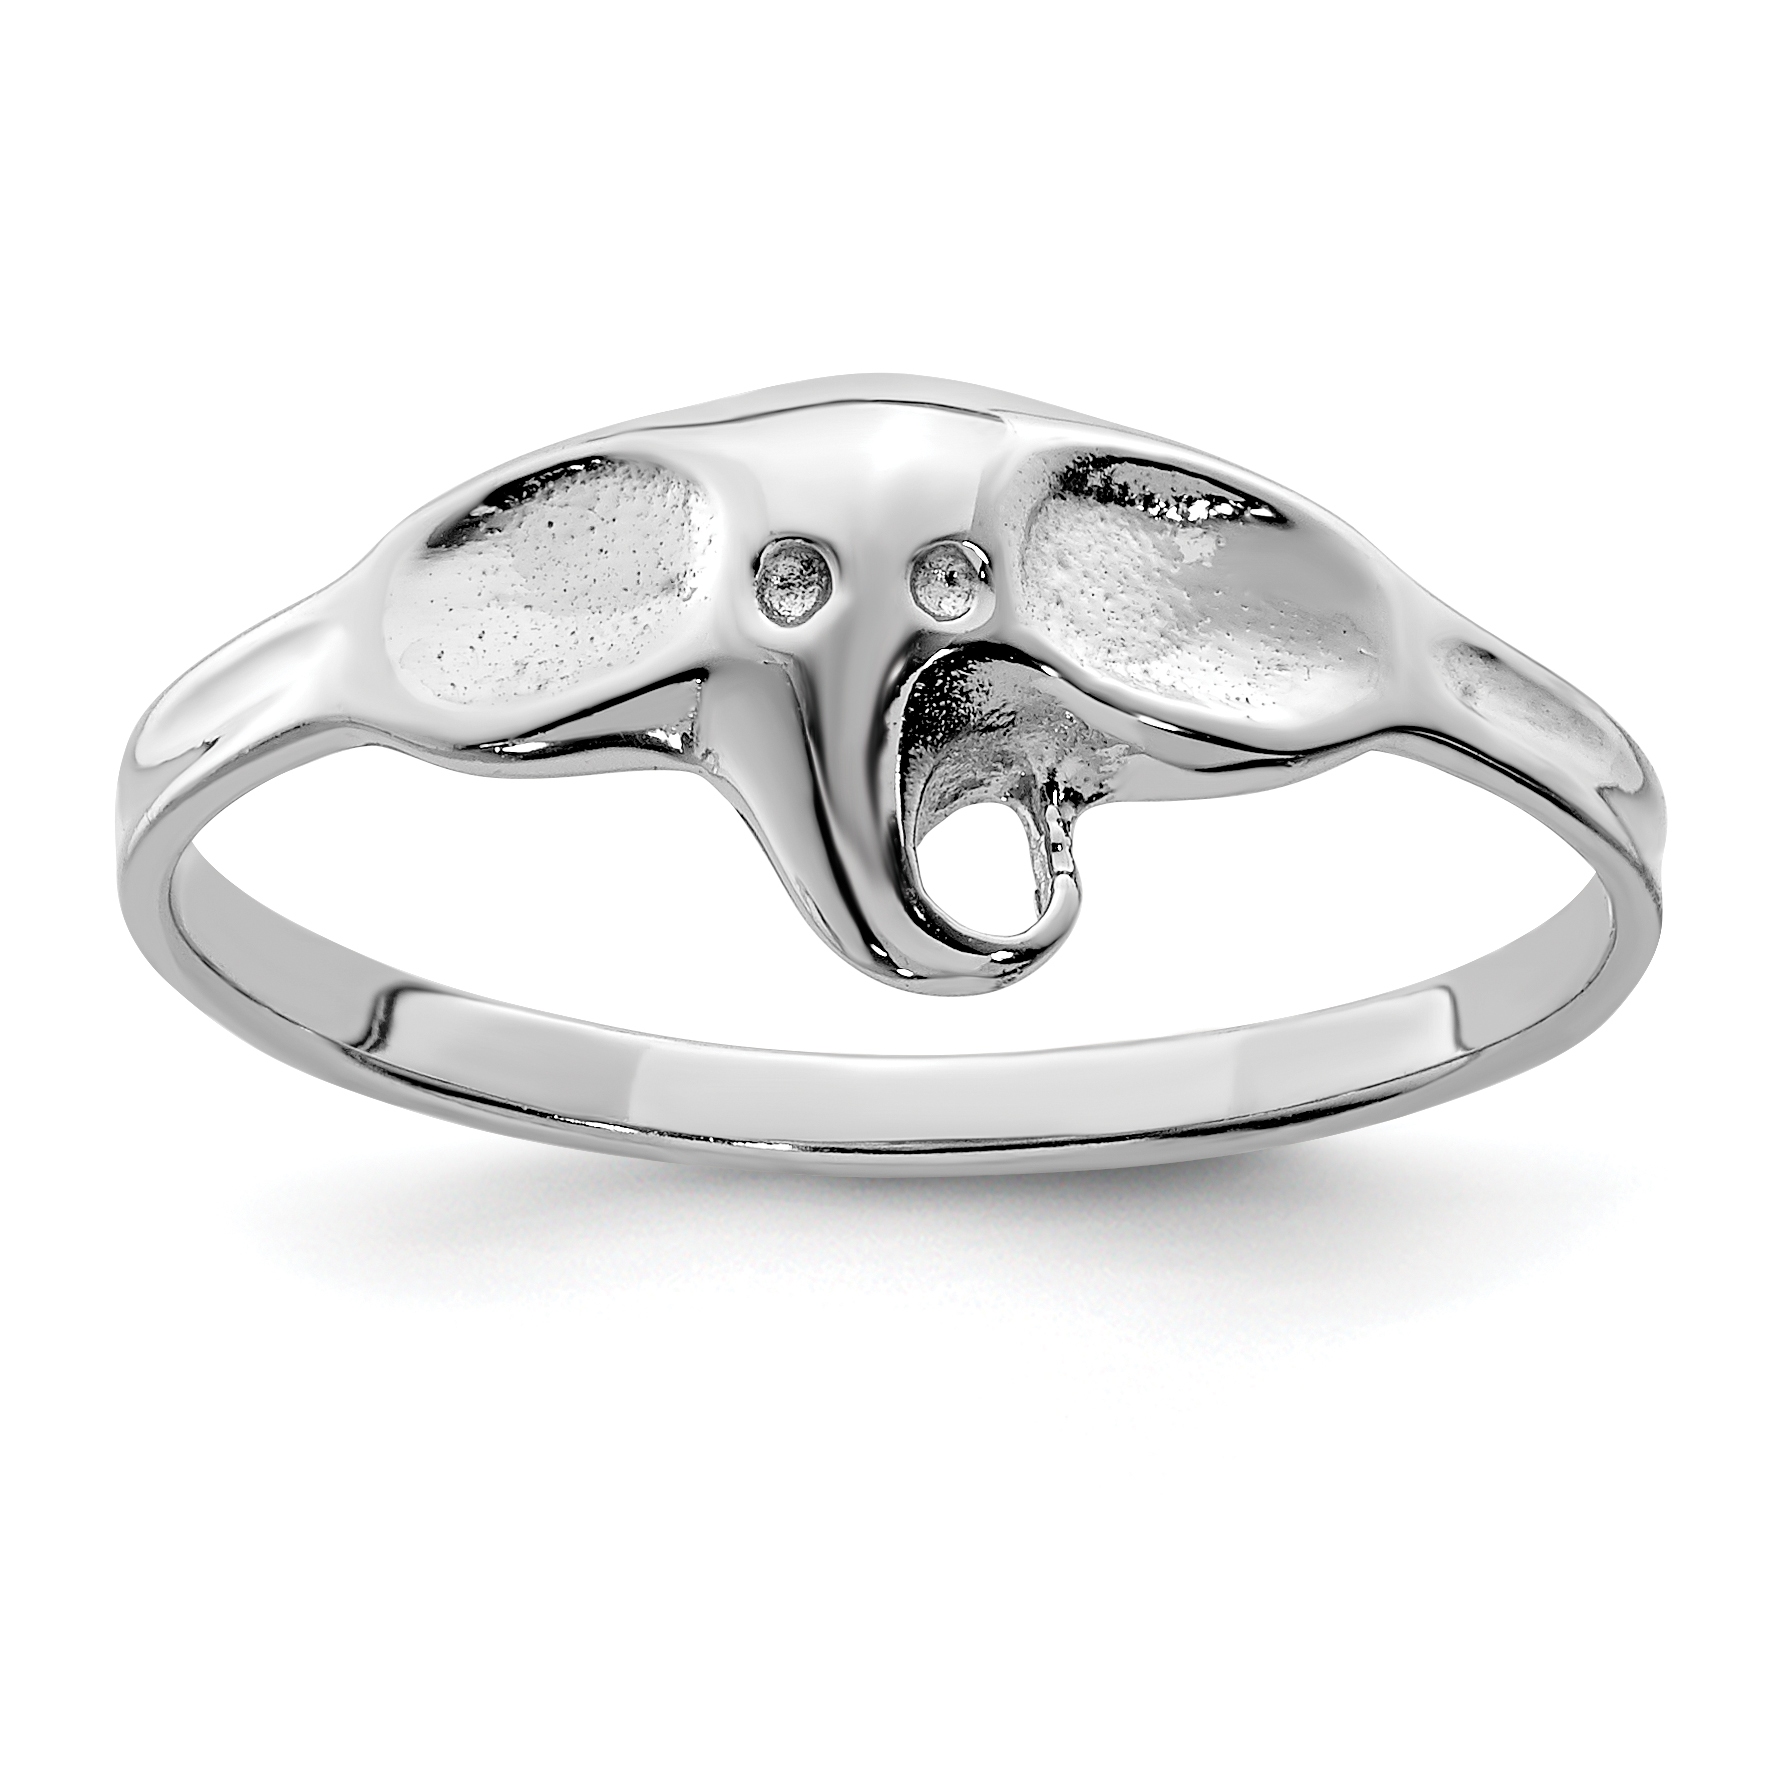 silver kaystore ring elephant to en mv kay sapphire zm lab created engagement expand rings sterling click